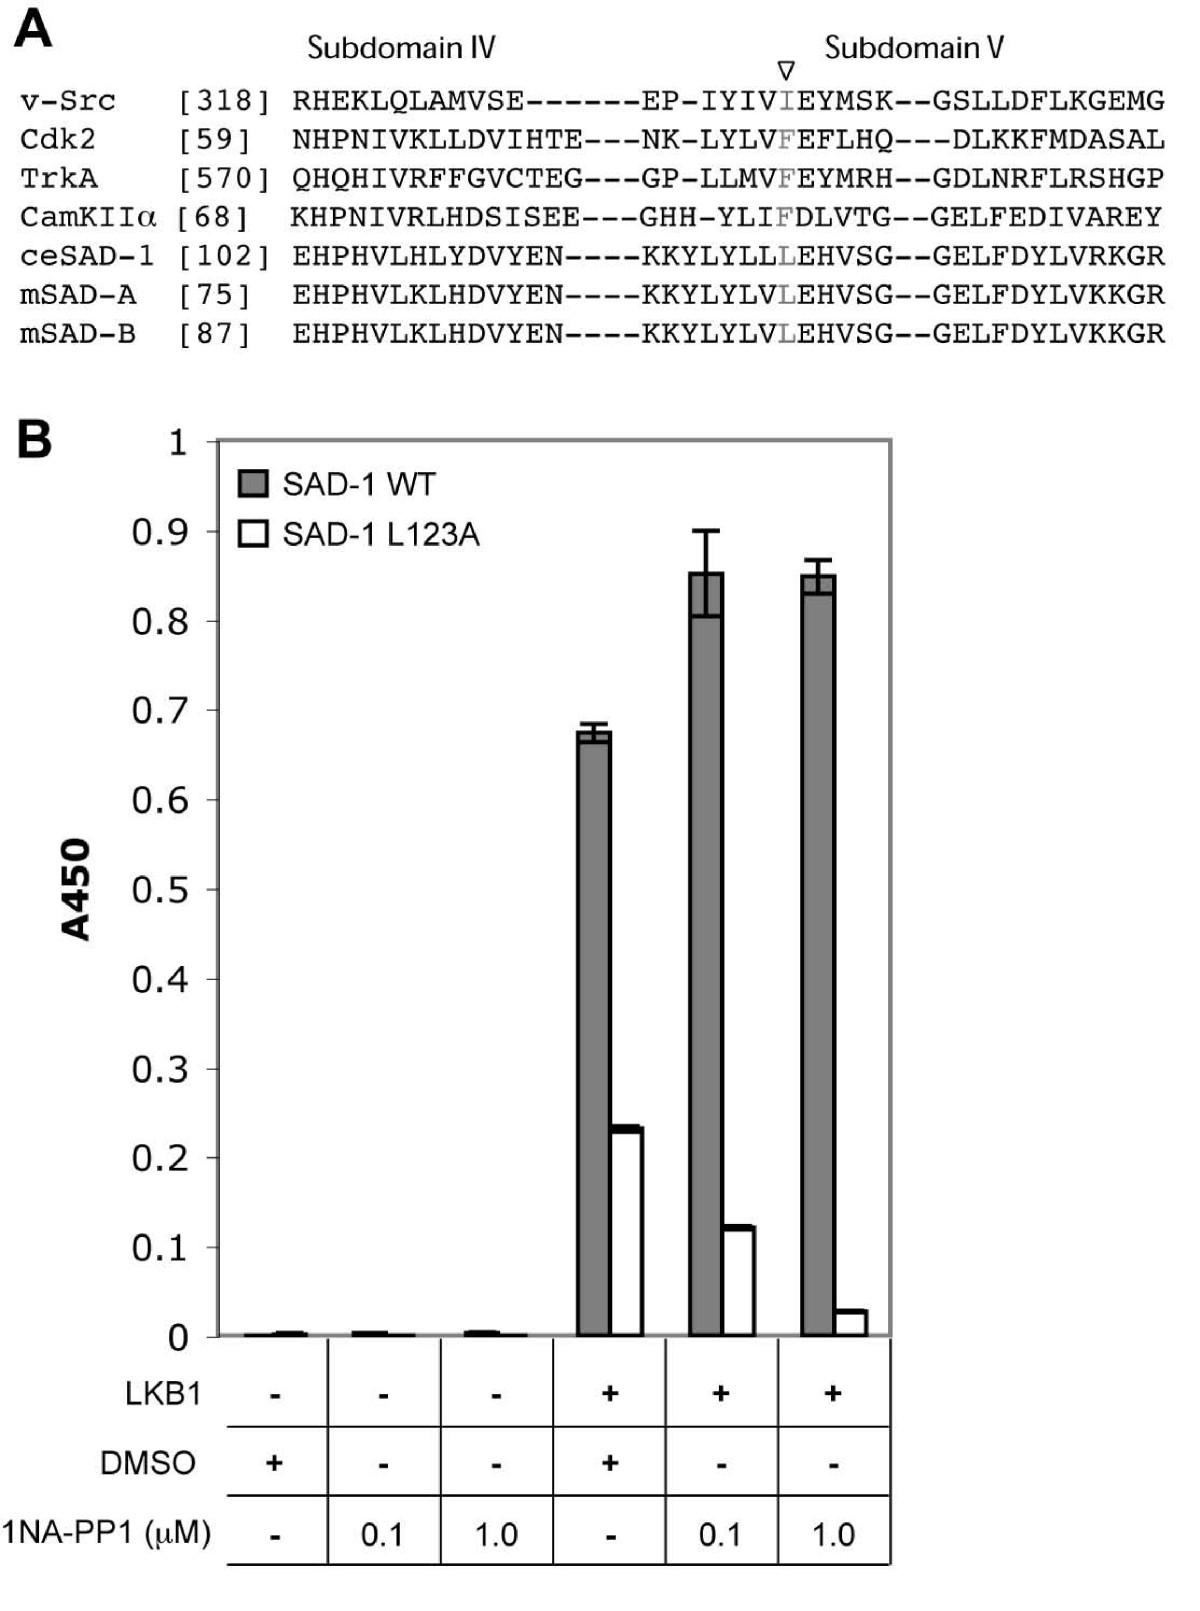 https://static-content.springer.com/image/art%3A10.1186%2F1749-8104-3-23/MediaObjects/13064_2008_Article_55_Fig1_HTML.jpg